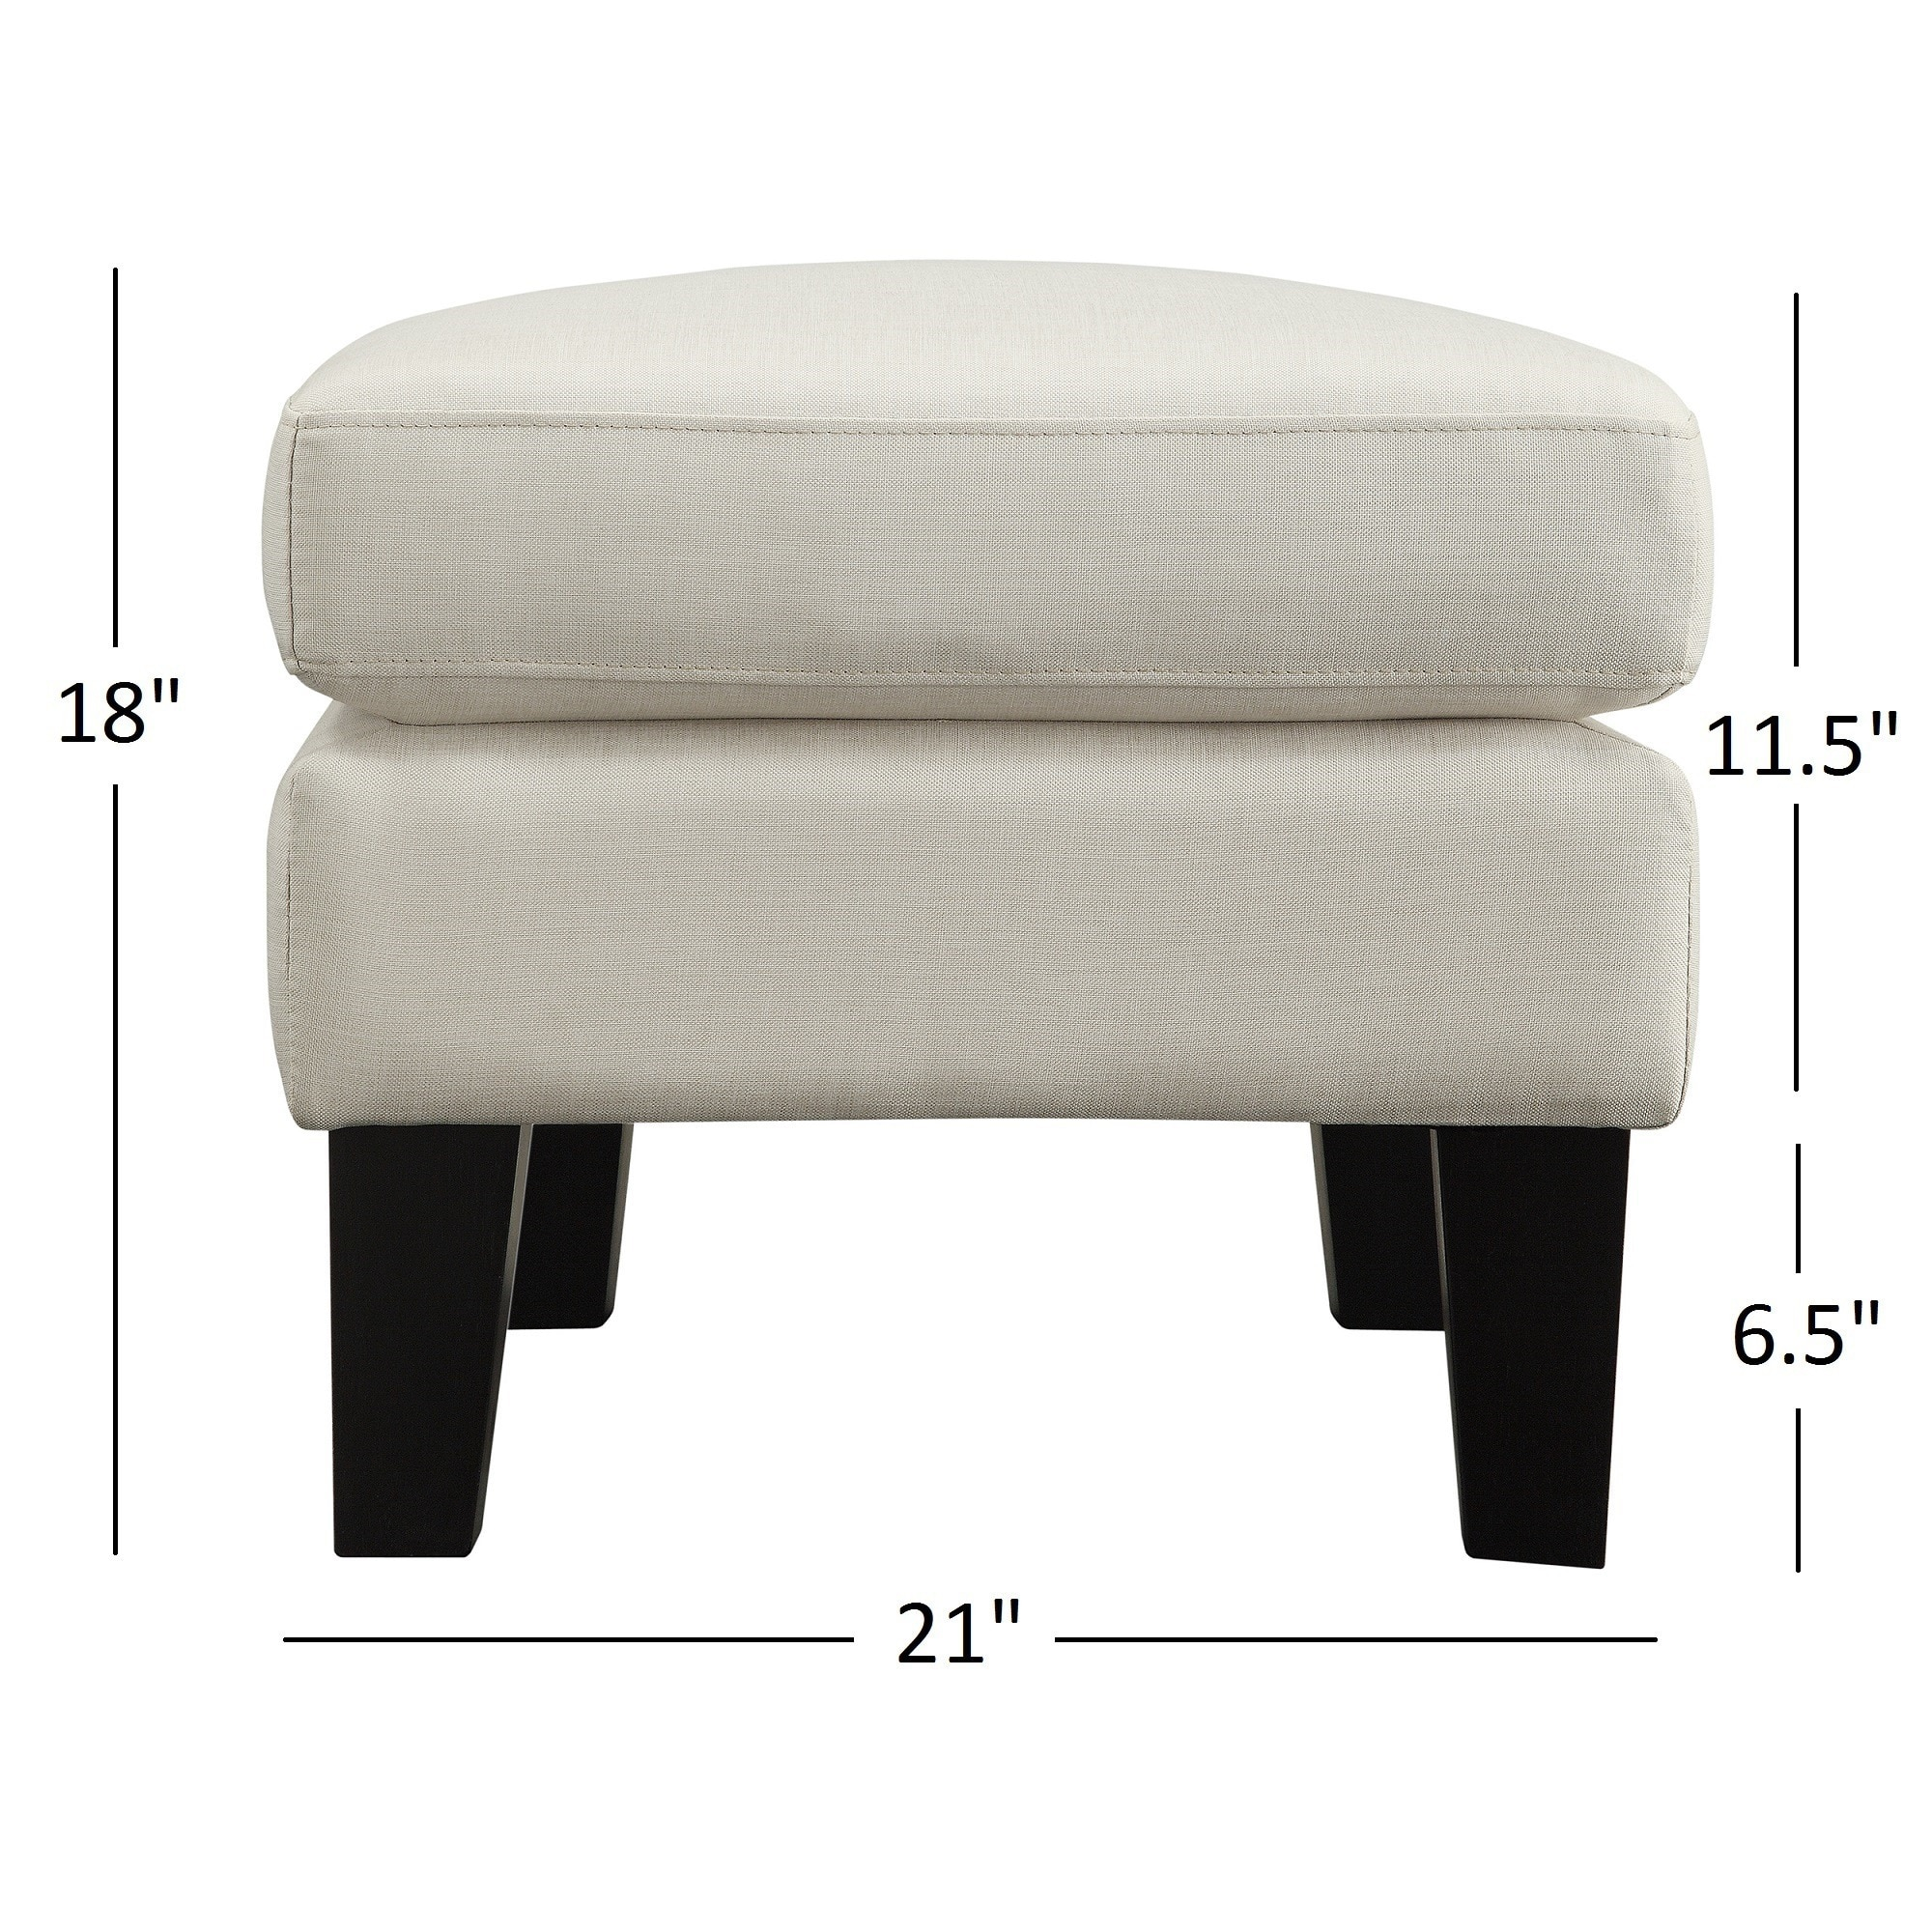 chair garden overstock shipping dalton today ottomans ottoman and chairs free home with product